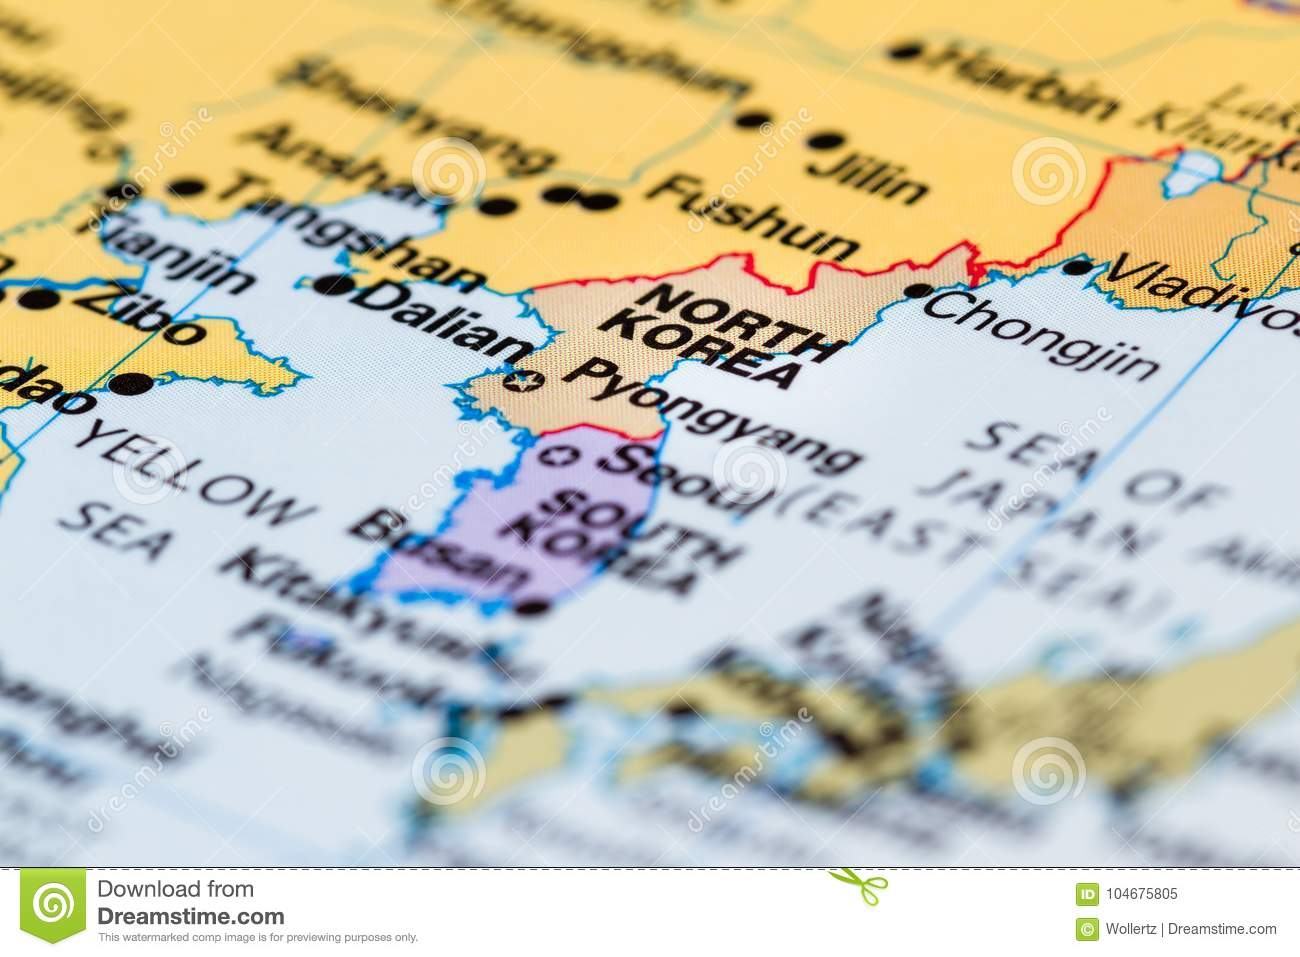 North korea on a map stock image image of countries 104675805 close up of a world map with north korea in focus gumiabroncs Choice Image